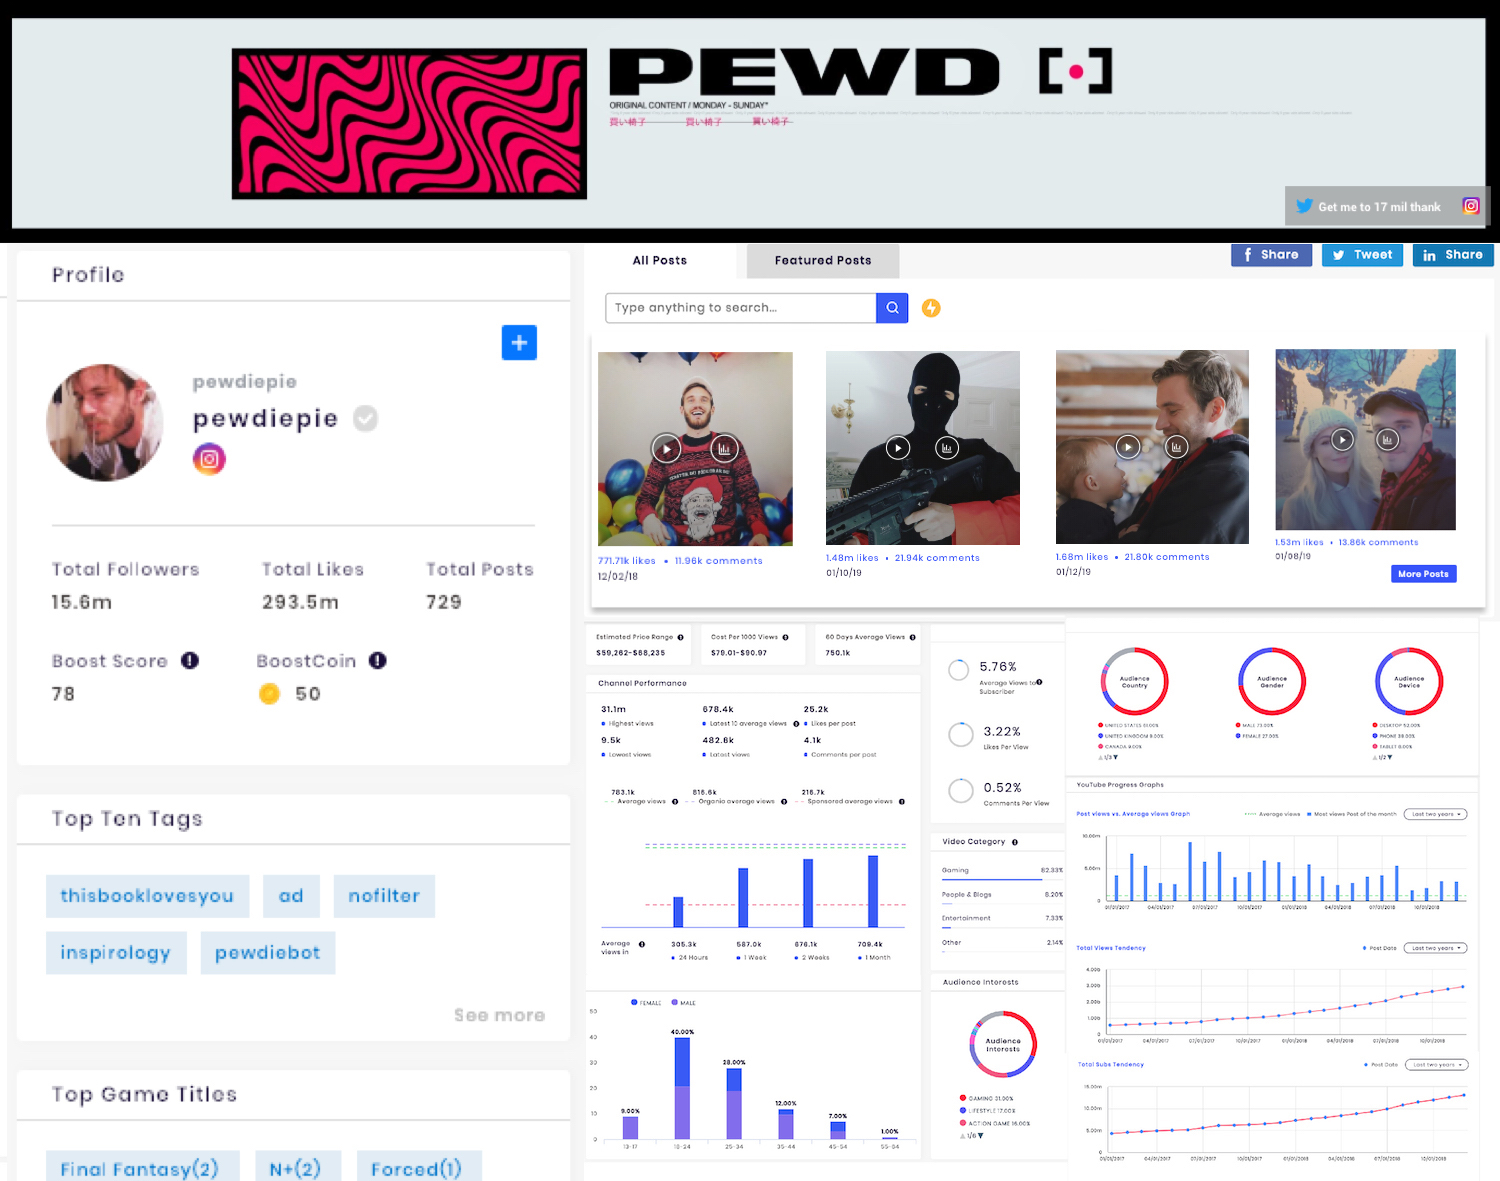 SocialBook provides in-depth channel analytics of YouTube and Twitch gaming influencers.